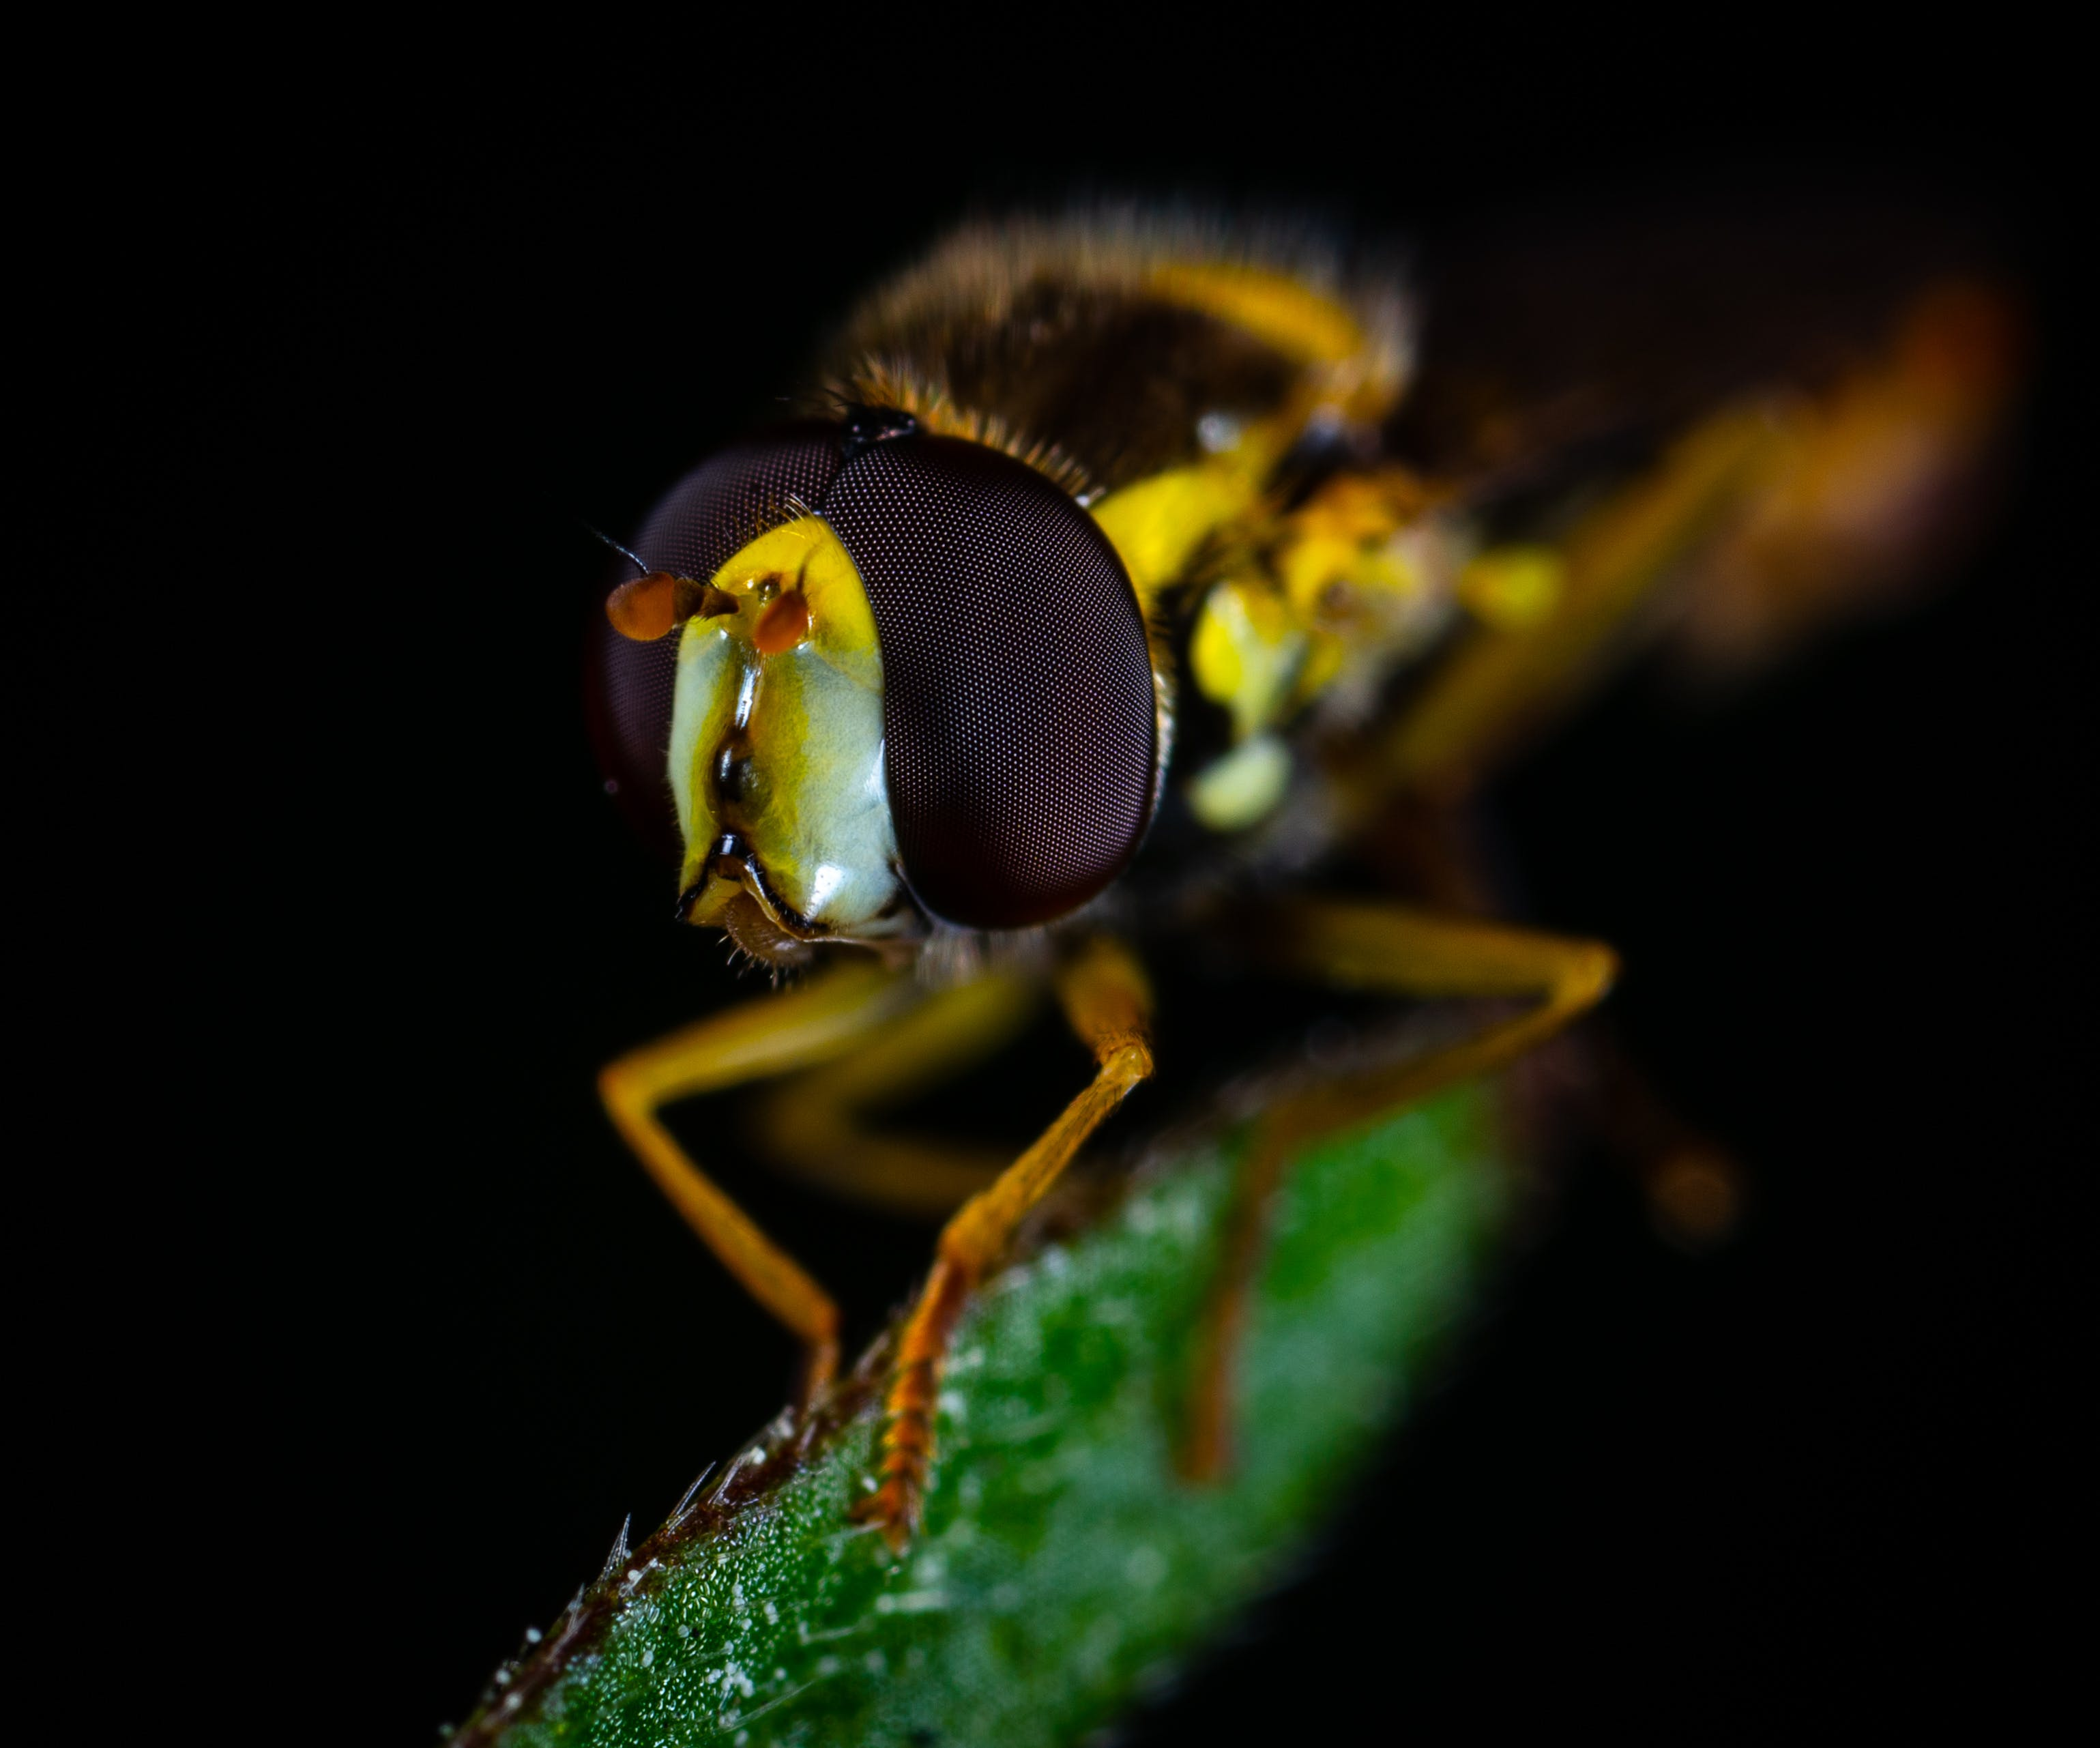 Macro Photography of Brown Fly Perched on Green Leaf